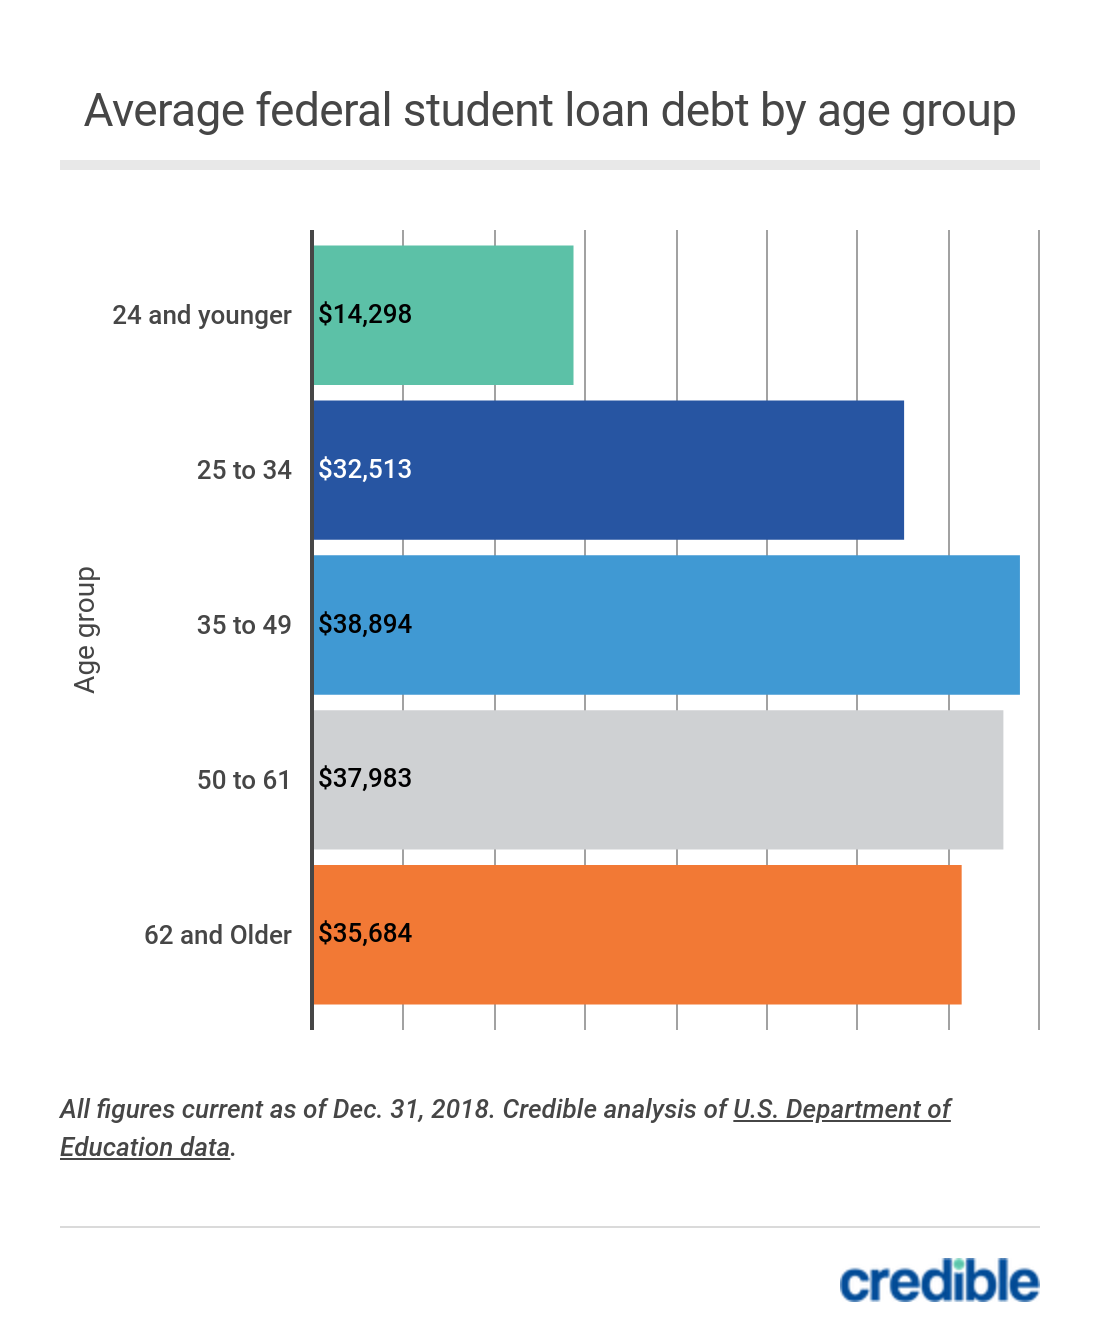 Average federal student loan debt by age group